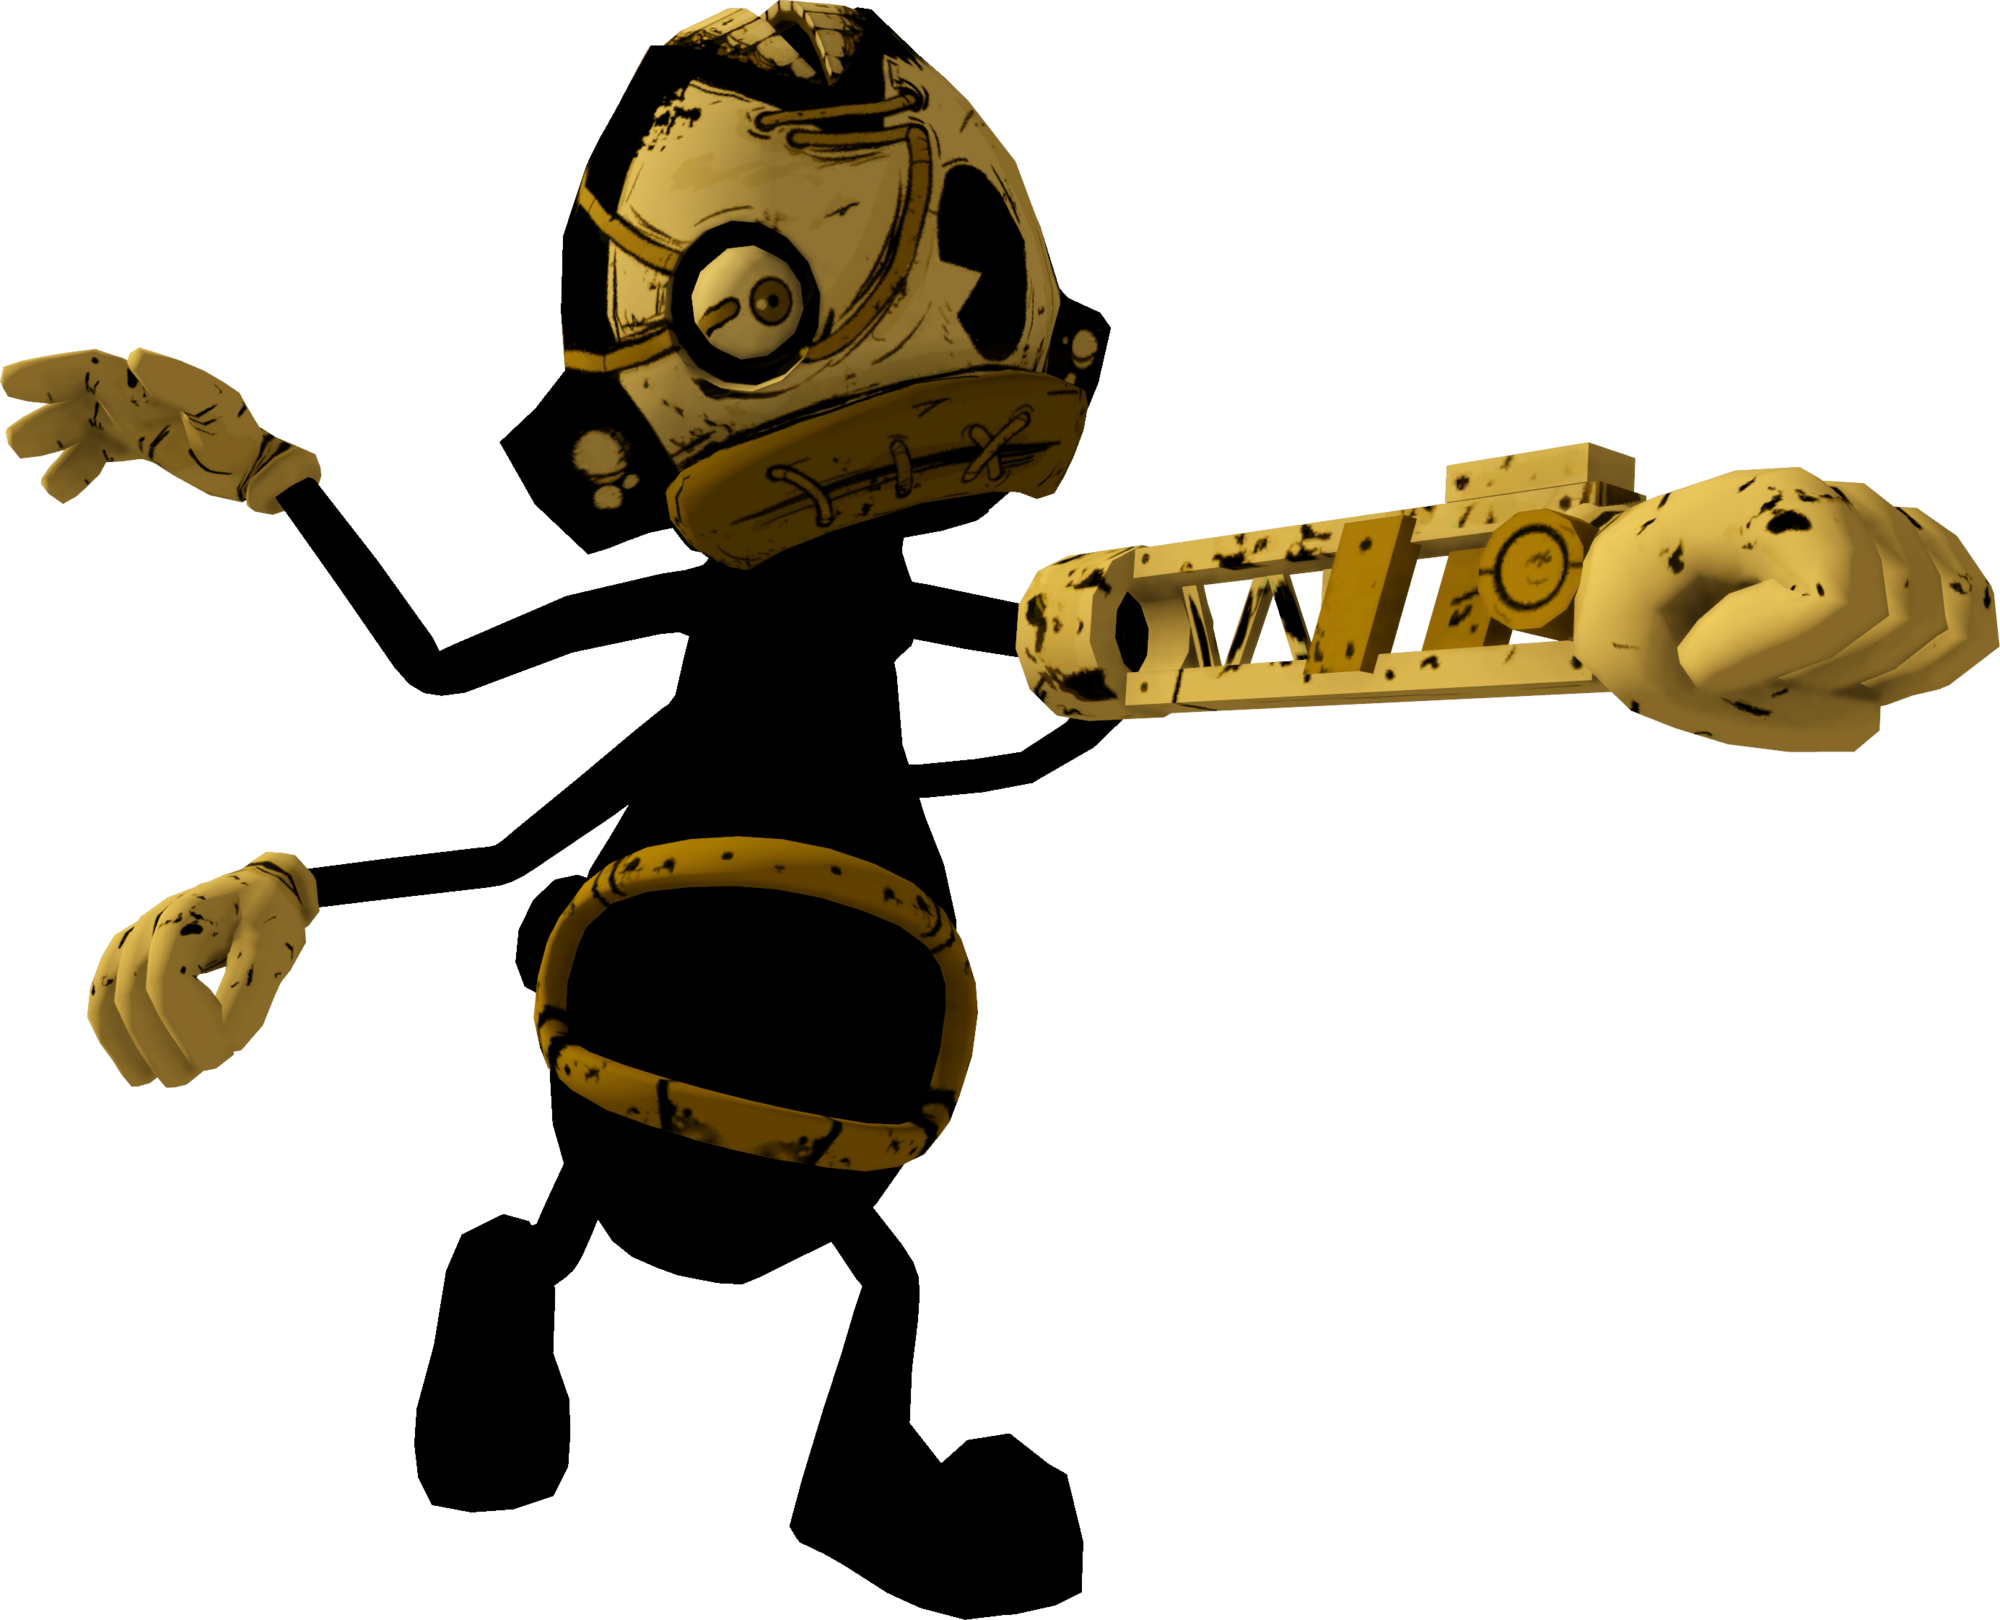 Room Maker Simulator Striker Bendy And The Ink Machine Wiki Fandom Powered